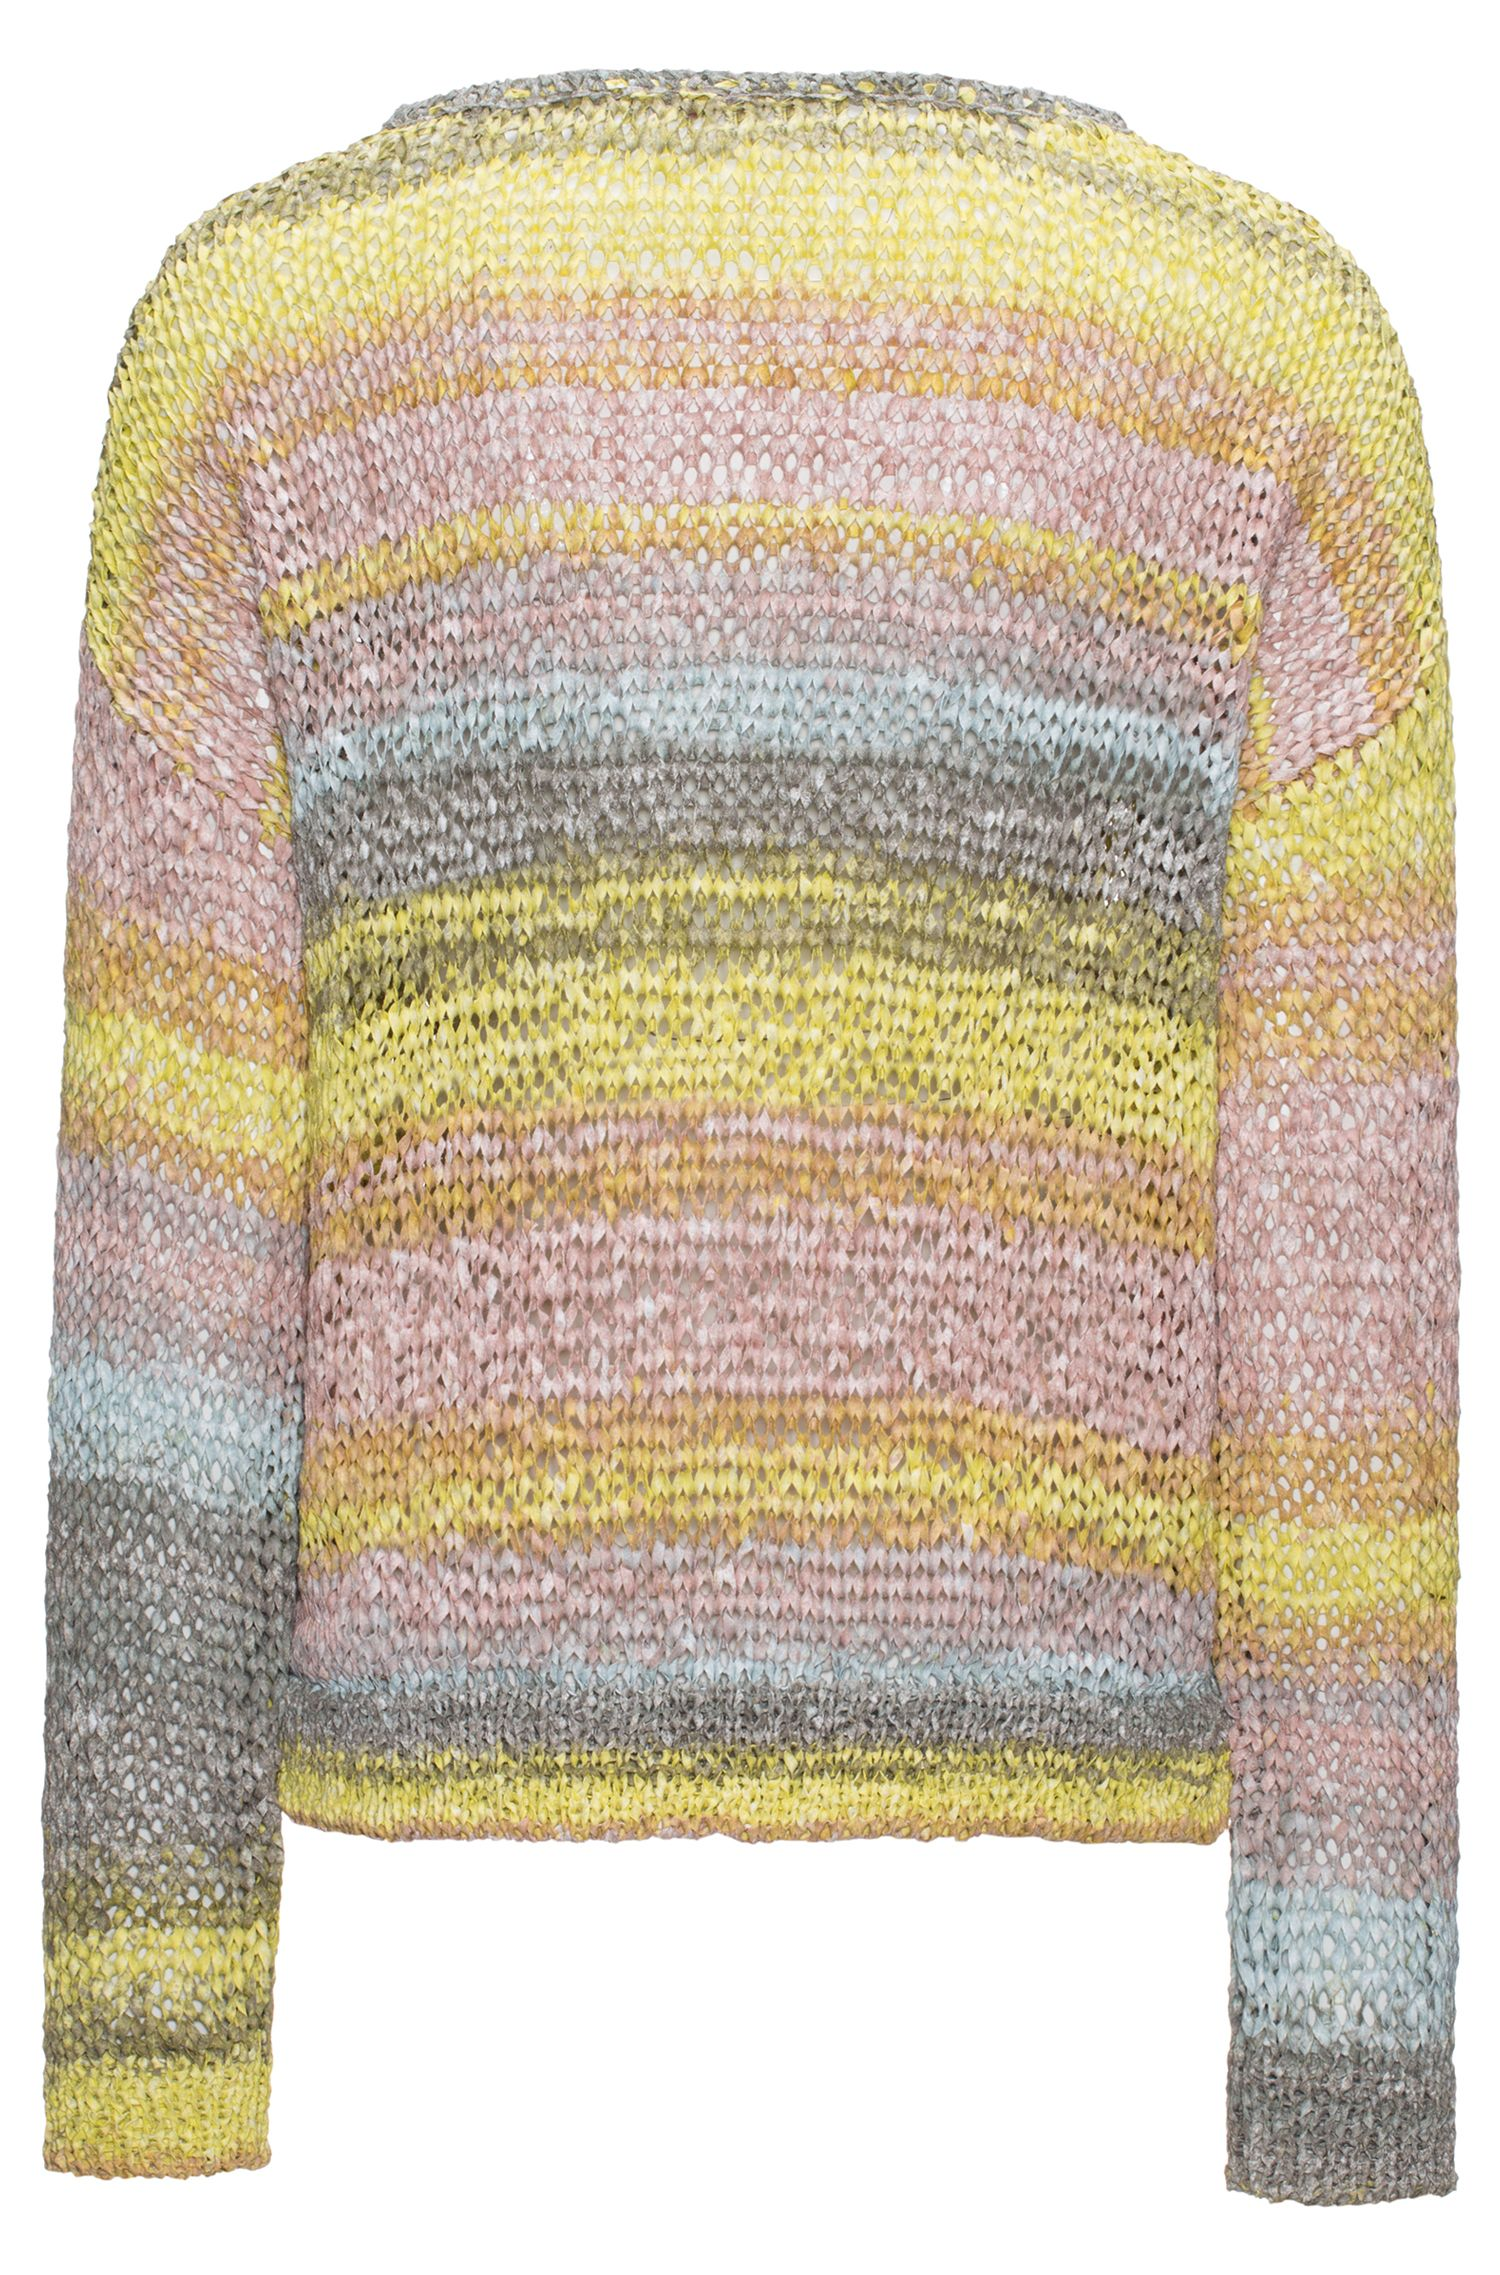 Pull court en fil de ruban multicolore